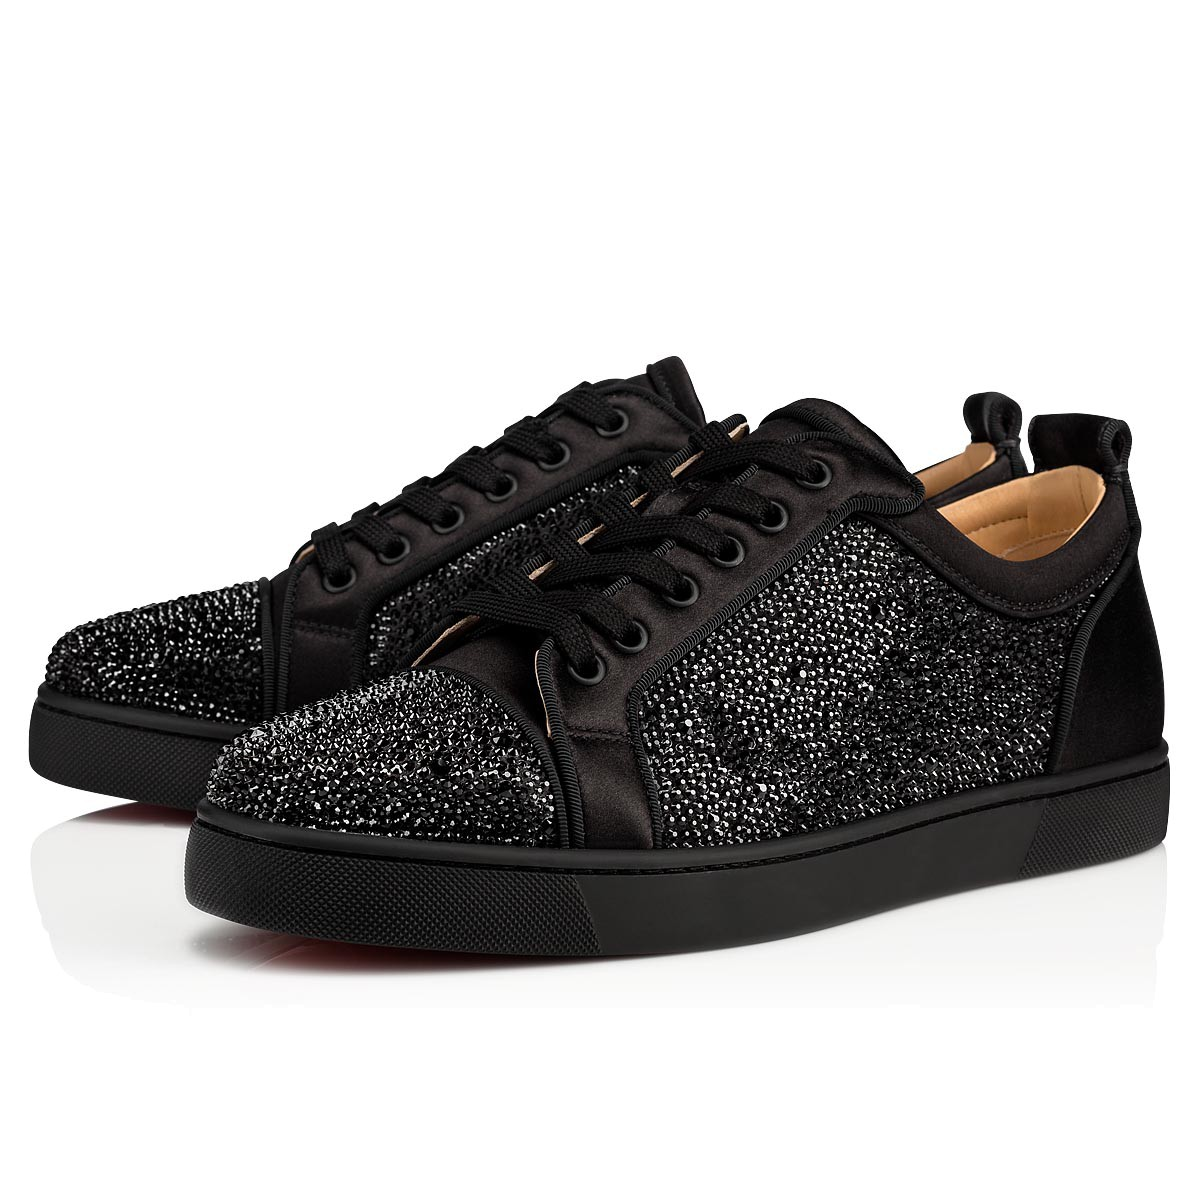 Louis Junior Strass Black Strass Men Shoes Christian Louboutin